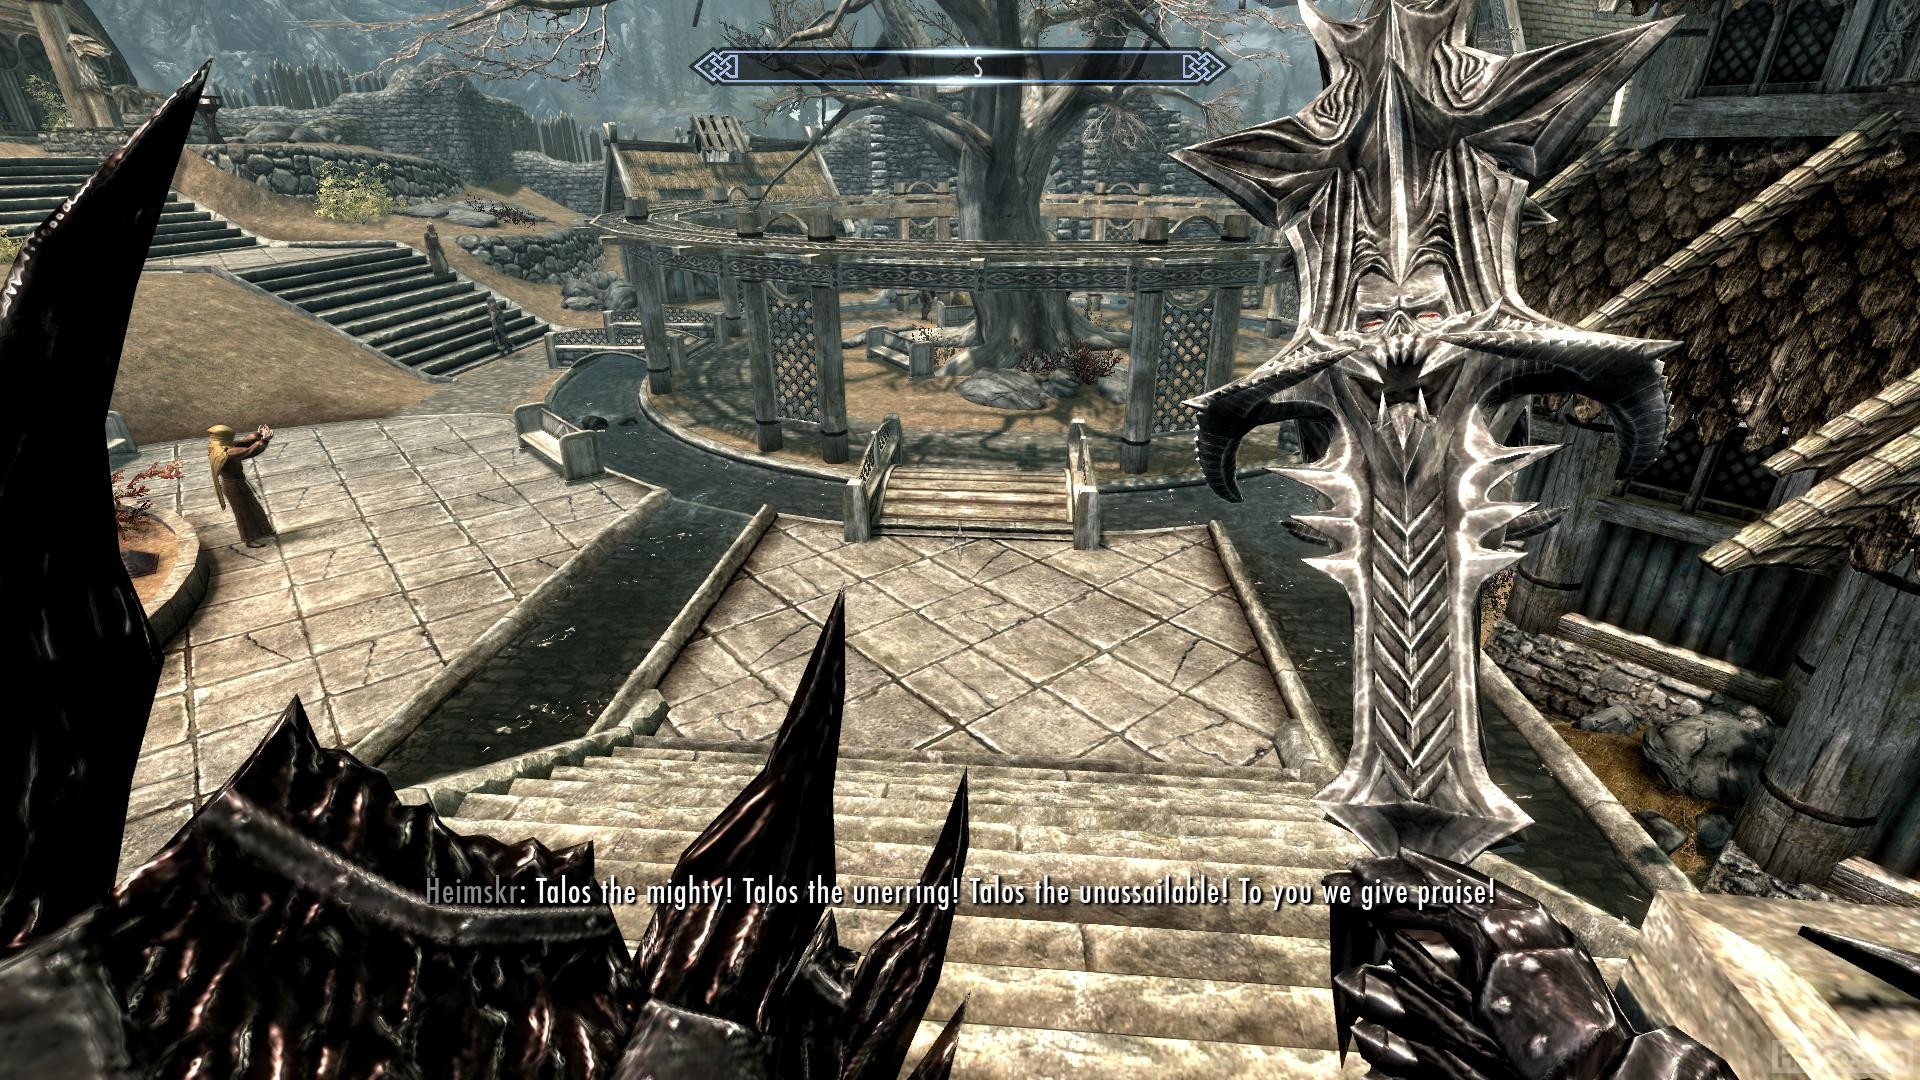 Скачать high resolution texture pack skyrim